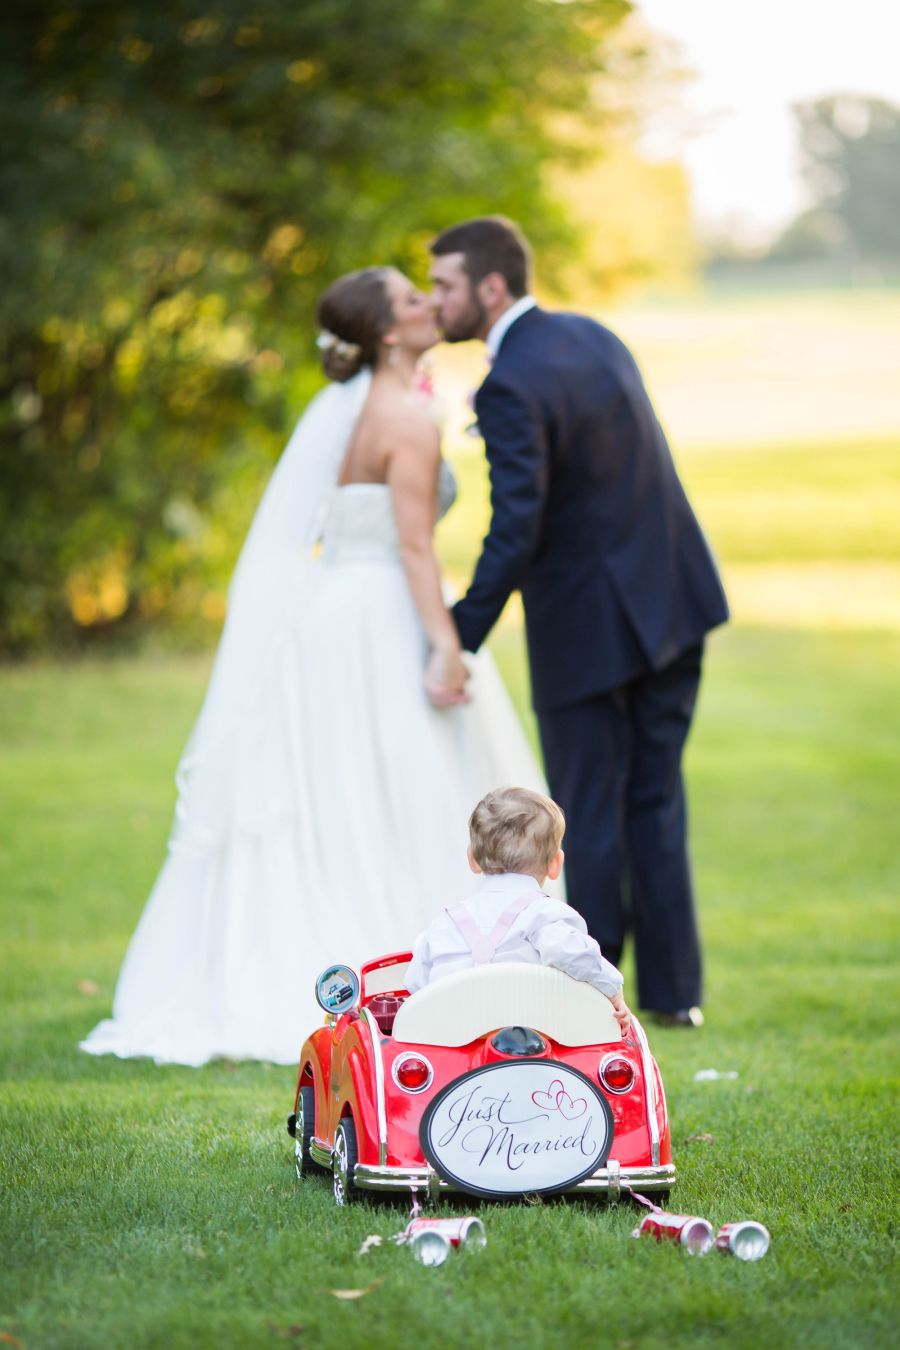 Wedding dress donation  Timeless  Traditional Fall Country Club Wedding  Ring bearer